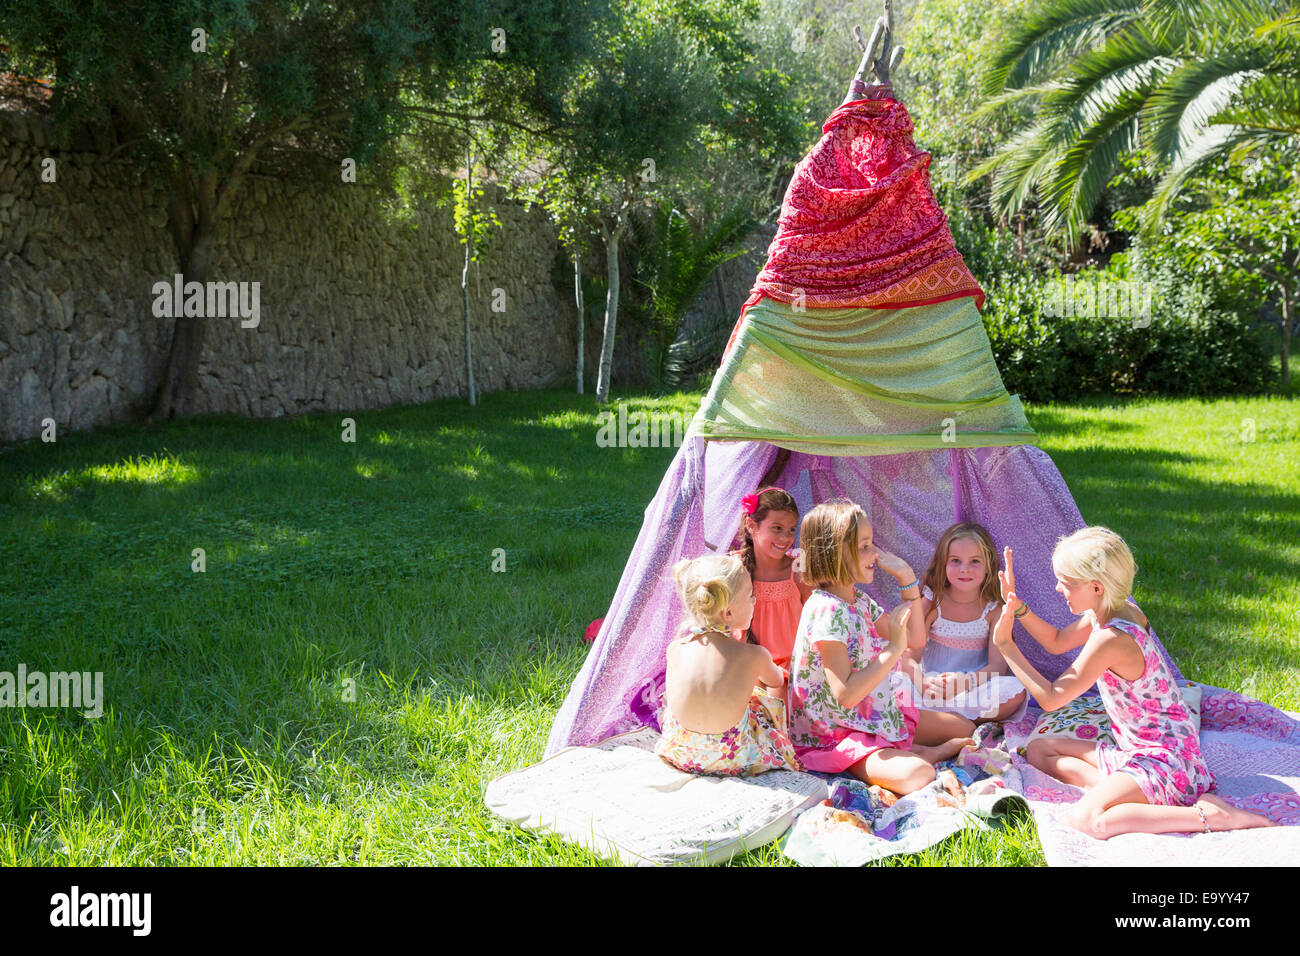 Five girls playing clapping games in front of teepee - Stock Image